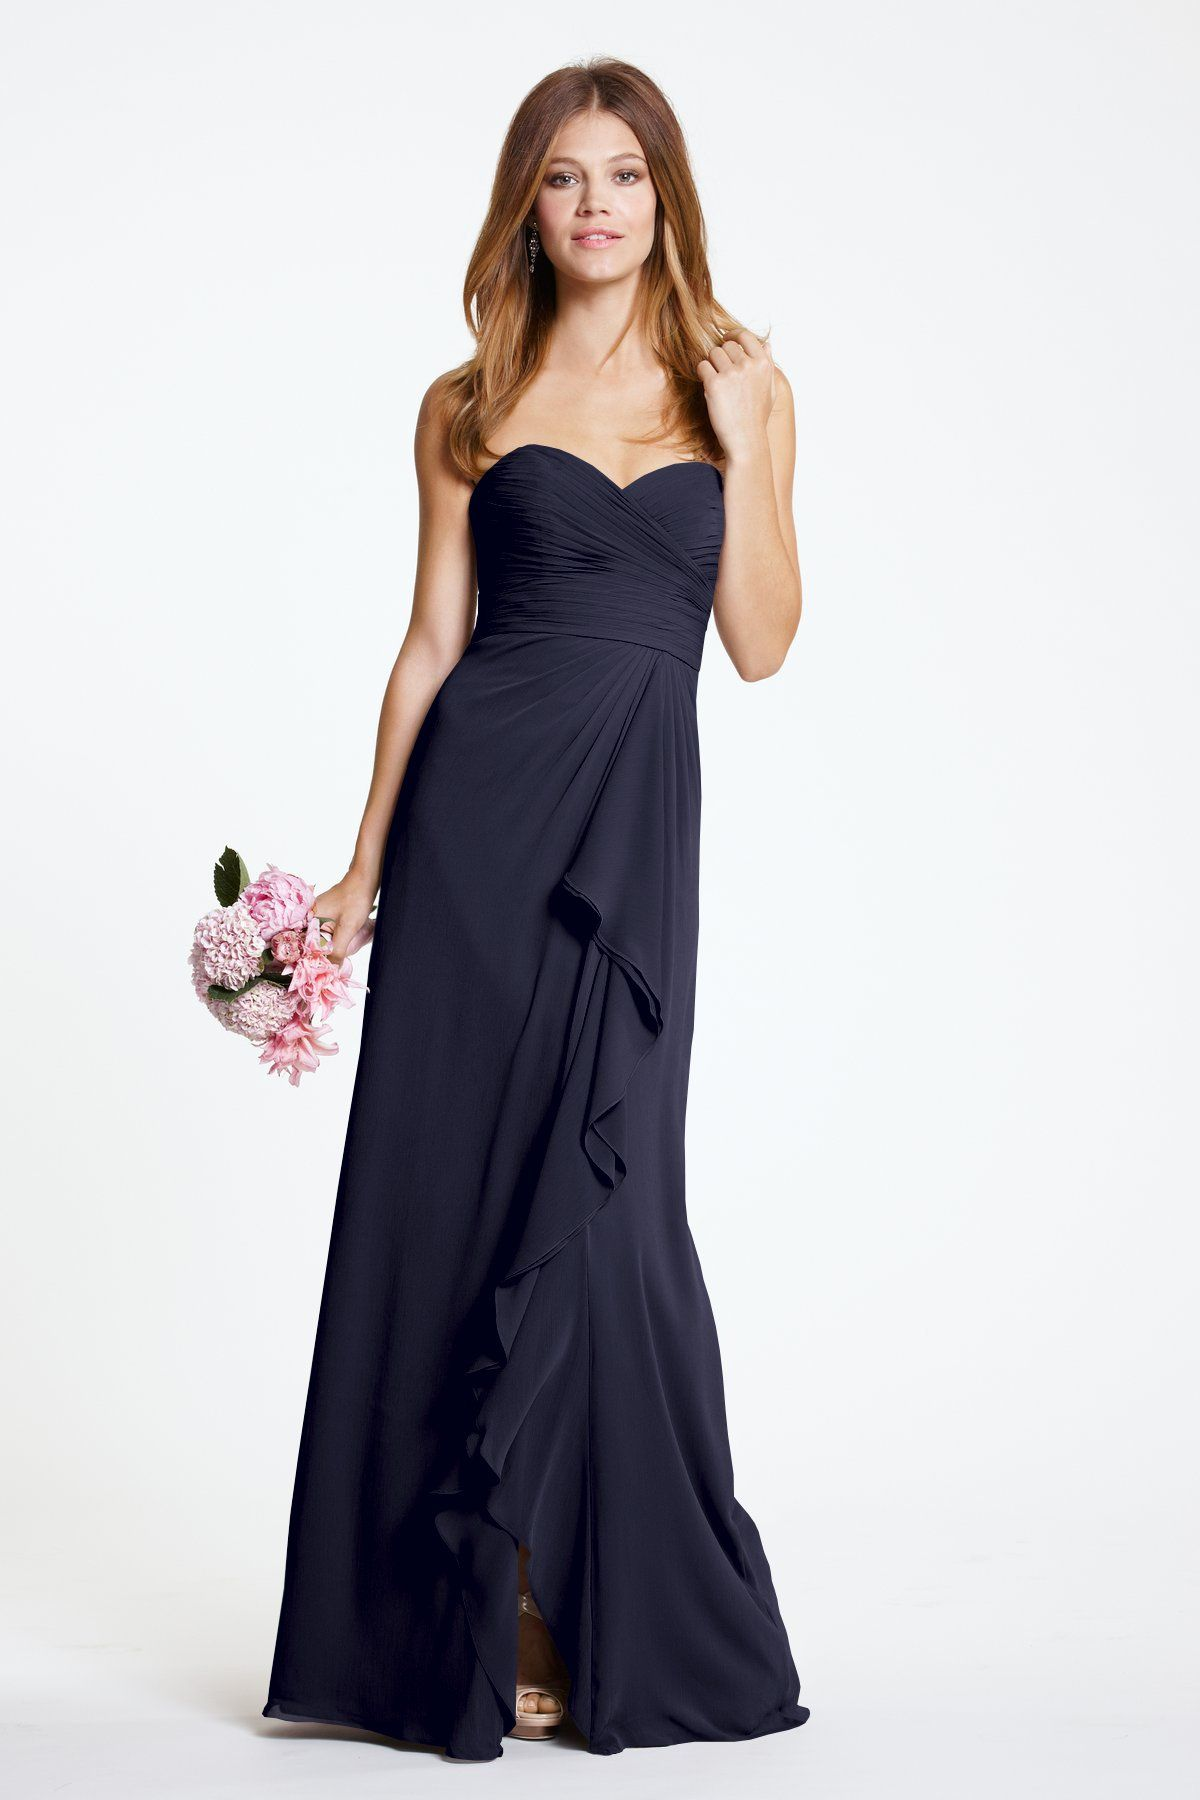 Dresses for wedding maids  Pin by Gina Makoujy on MaidsWear  Pinterest  Maids and Weddings